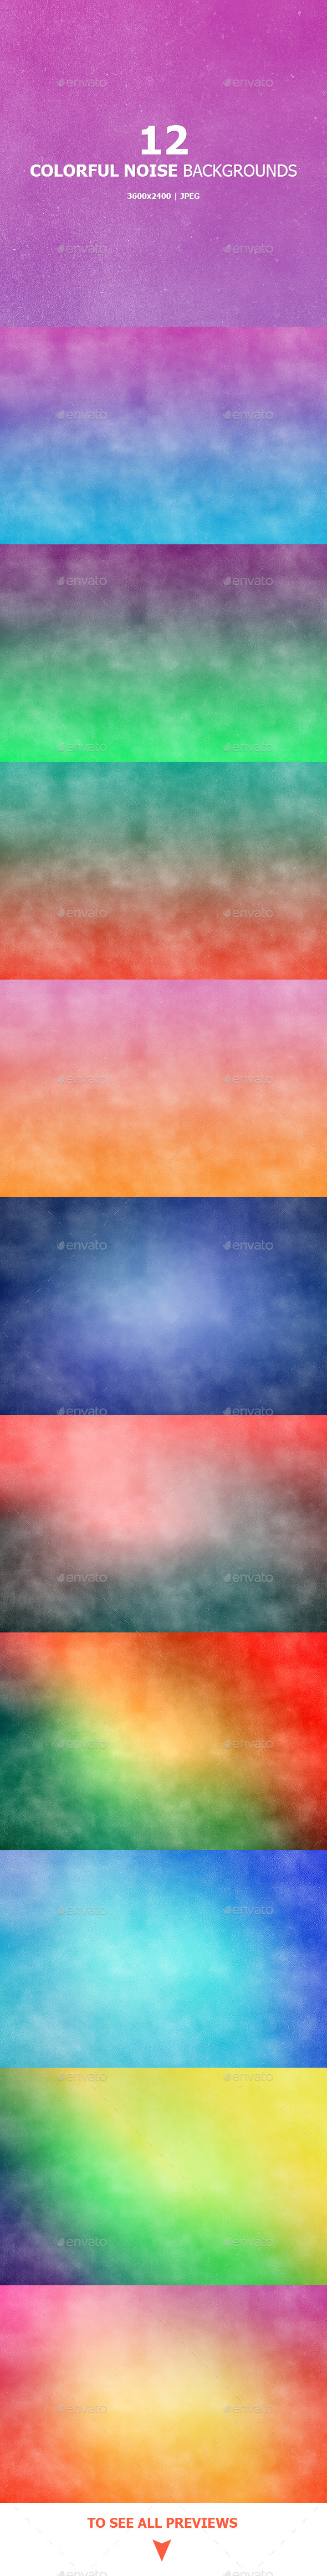 GraphicRiver Colorful Noise Backgrounds 9490741